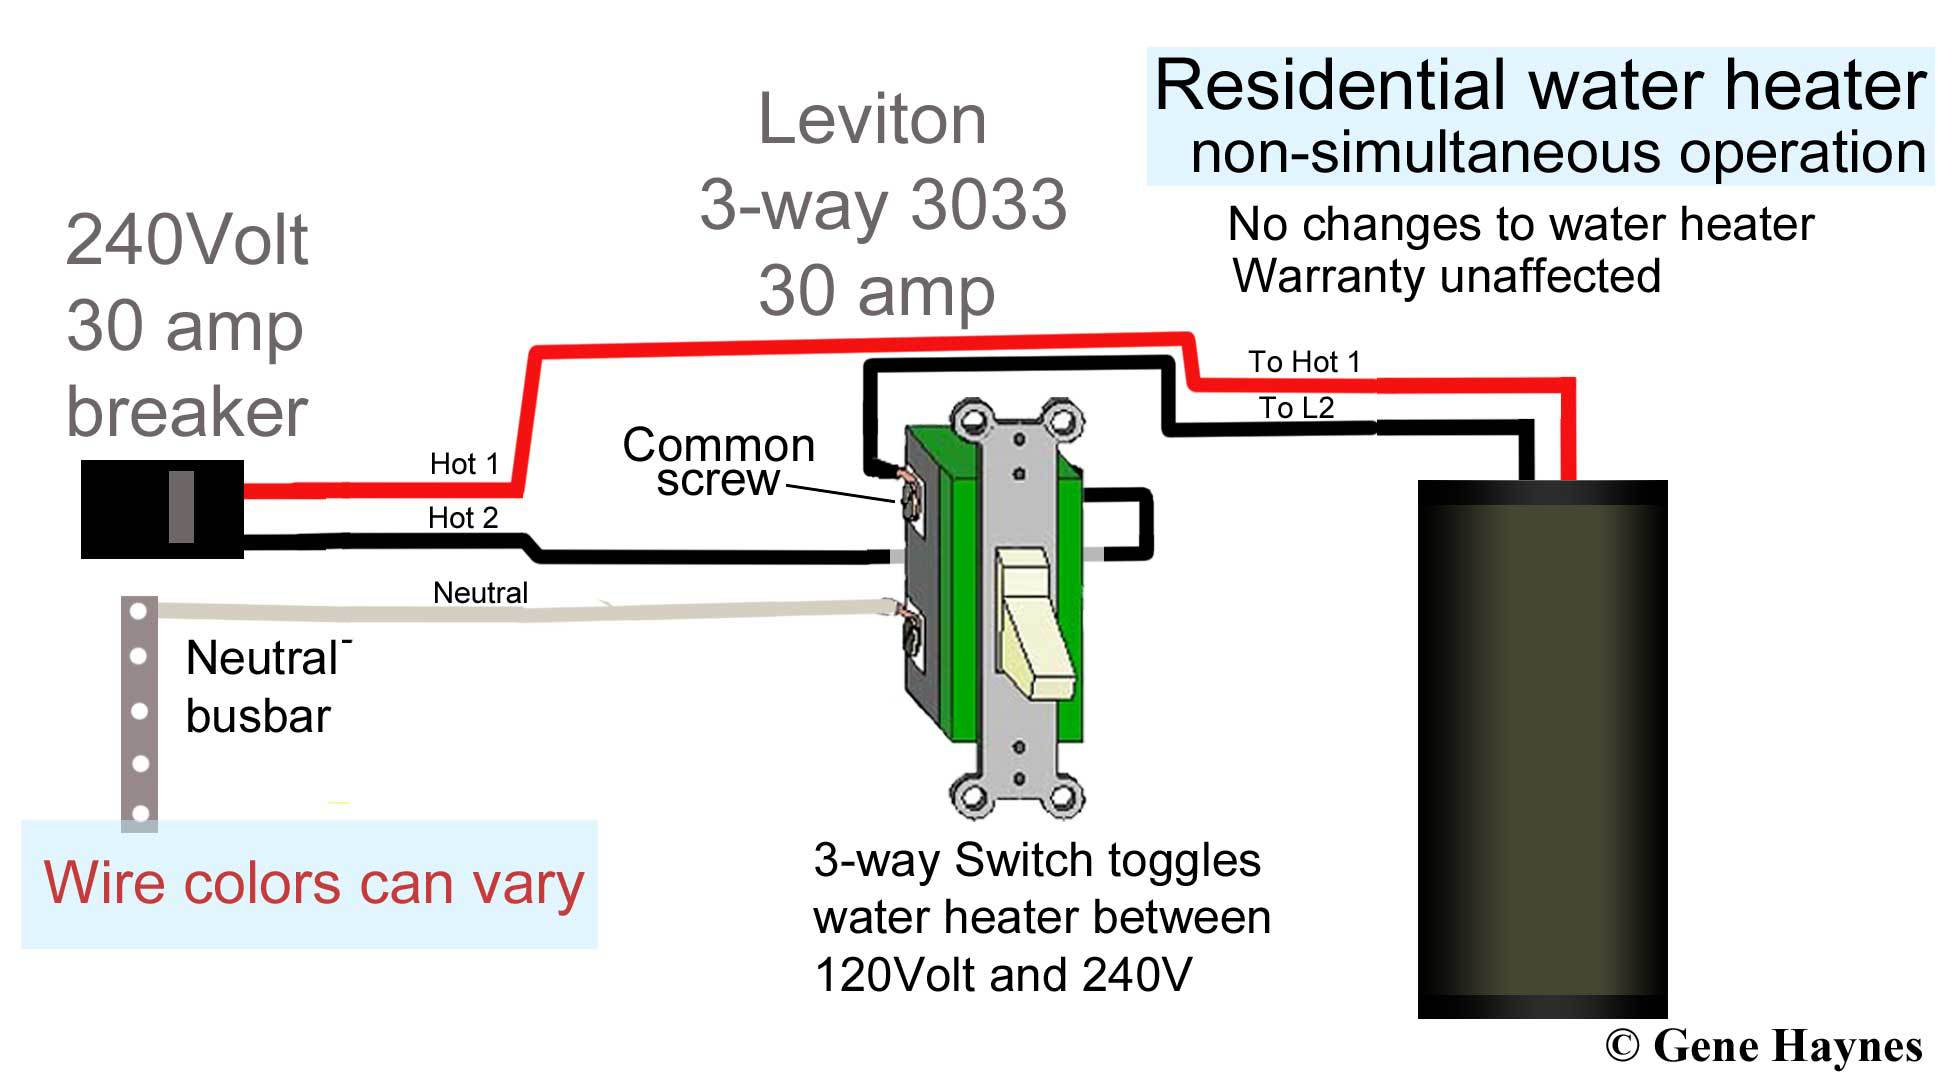 Lc 9004 Wiring Diagram 2 Pole Contactor Also 2 Pole Contactor Wiring Diagram Wiring Diagram